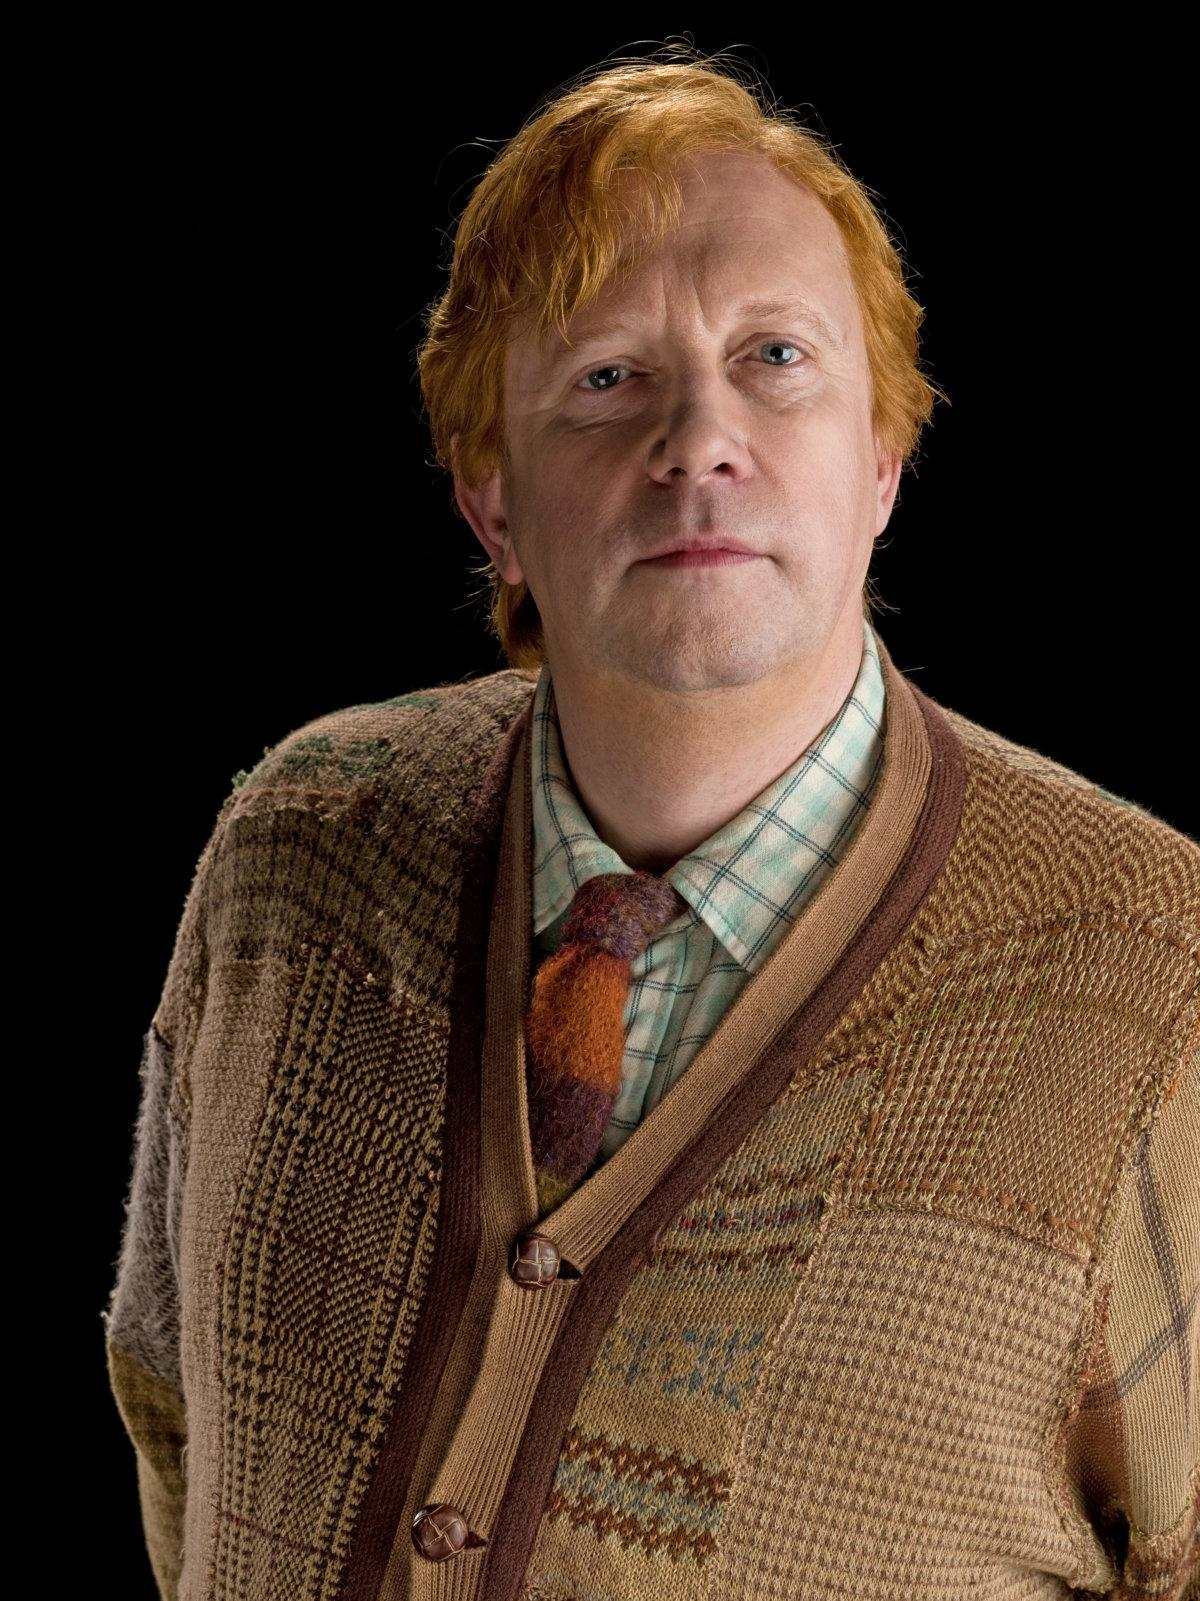 What is Mr. Weasley's first name?